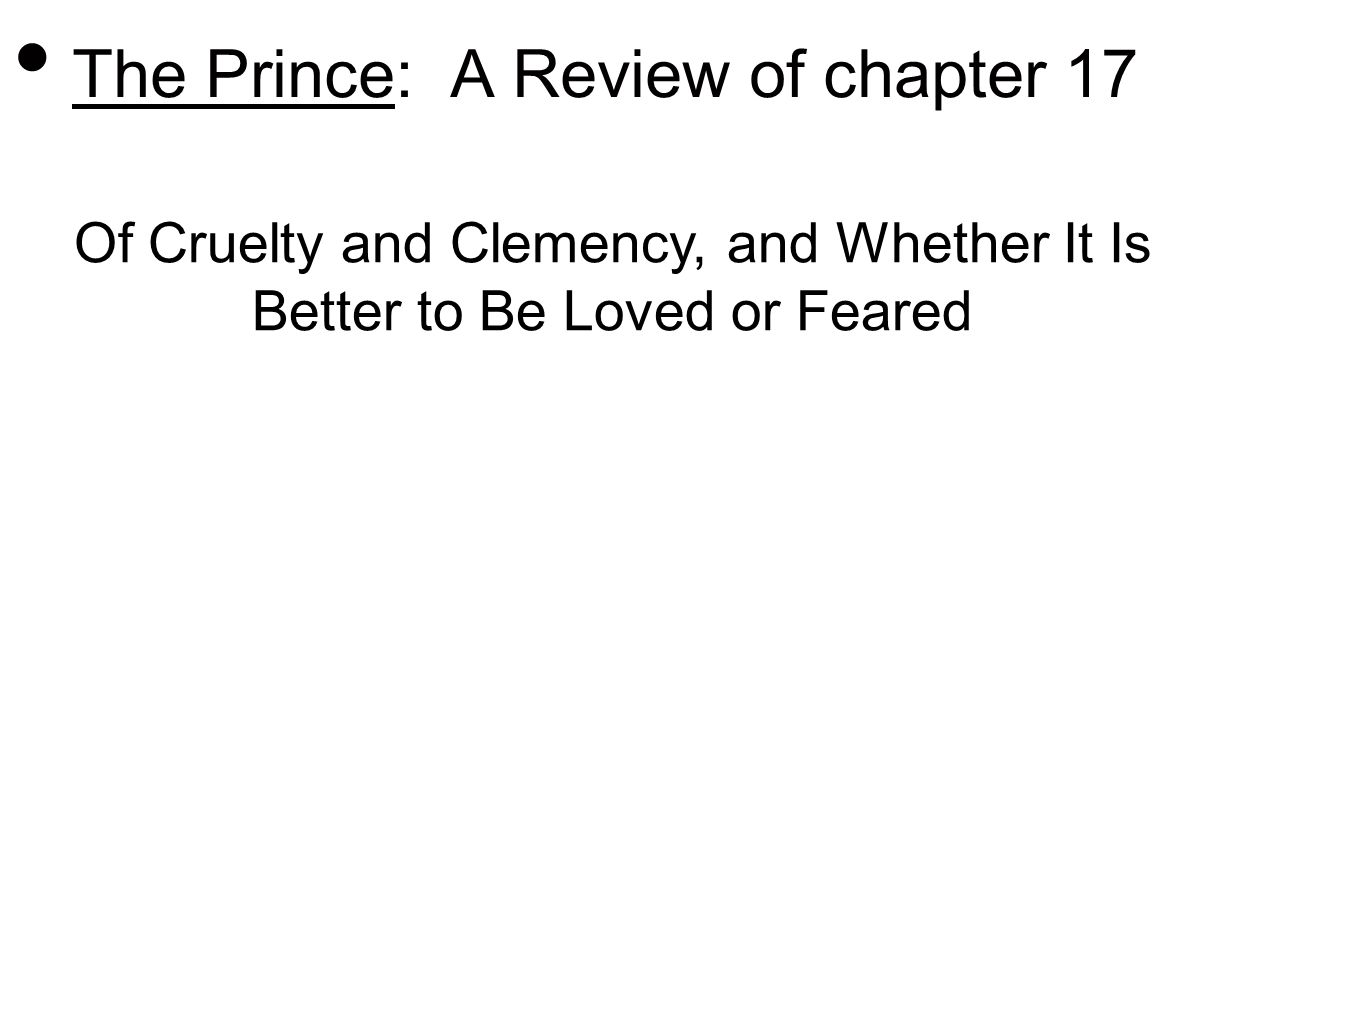 the prince machiavelli chapter 17